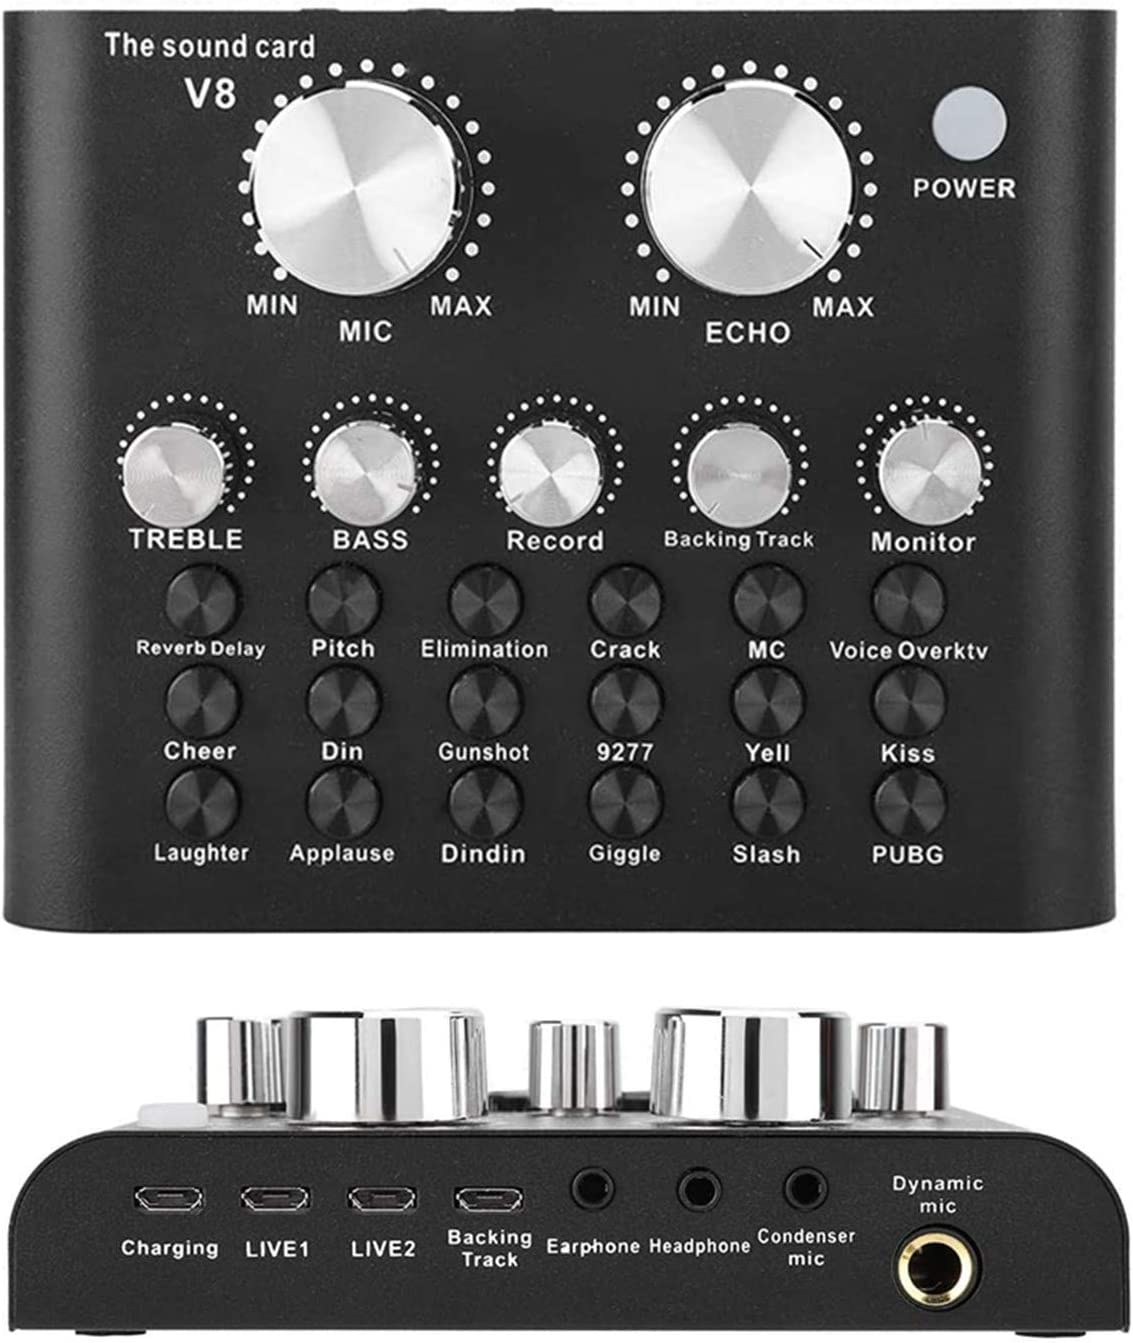 REMALL Bluetooth Mini Sound Mixer Board for Live Streaming, Voice Changer Sound Card with Effects, Audio Mixer for Music Recording Karaoke Singing Broadcast on Cell Phone Computer Laptop Tablet -V8A2